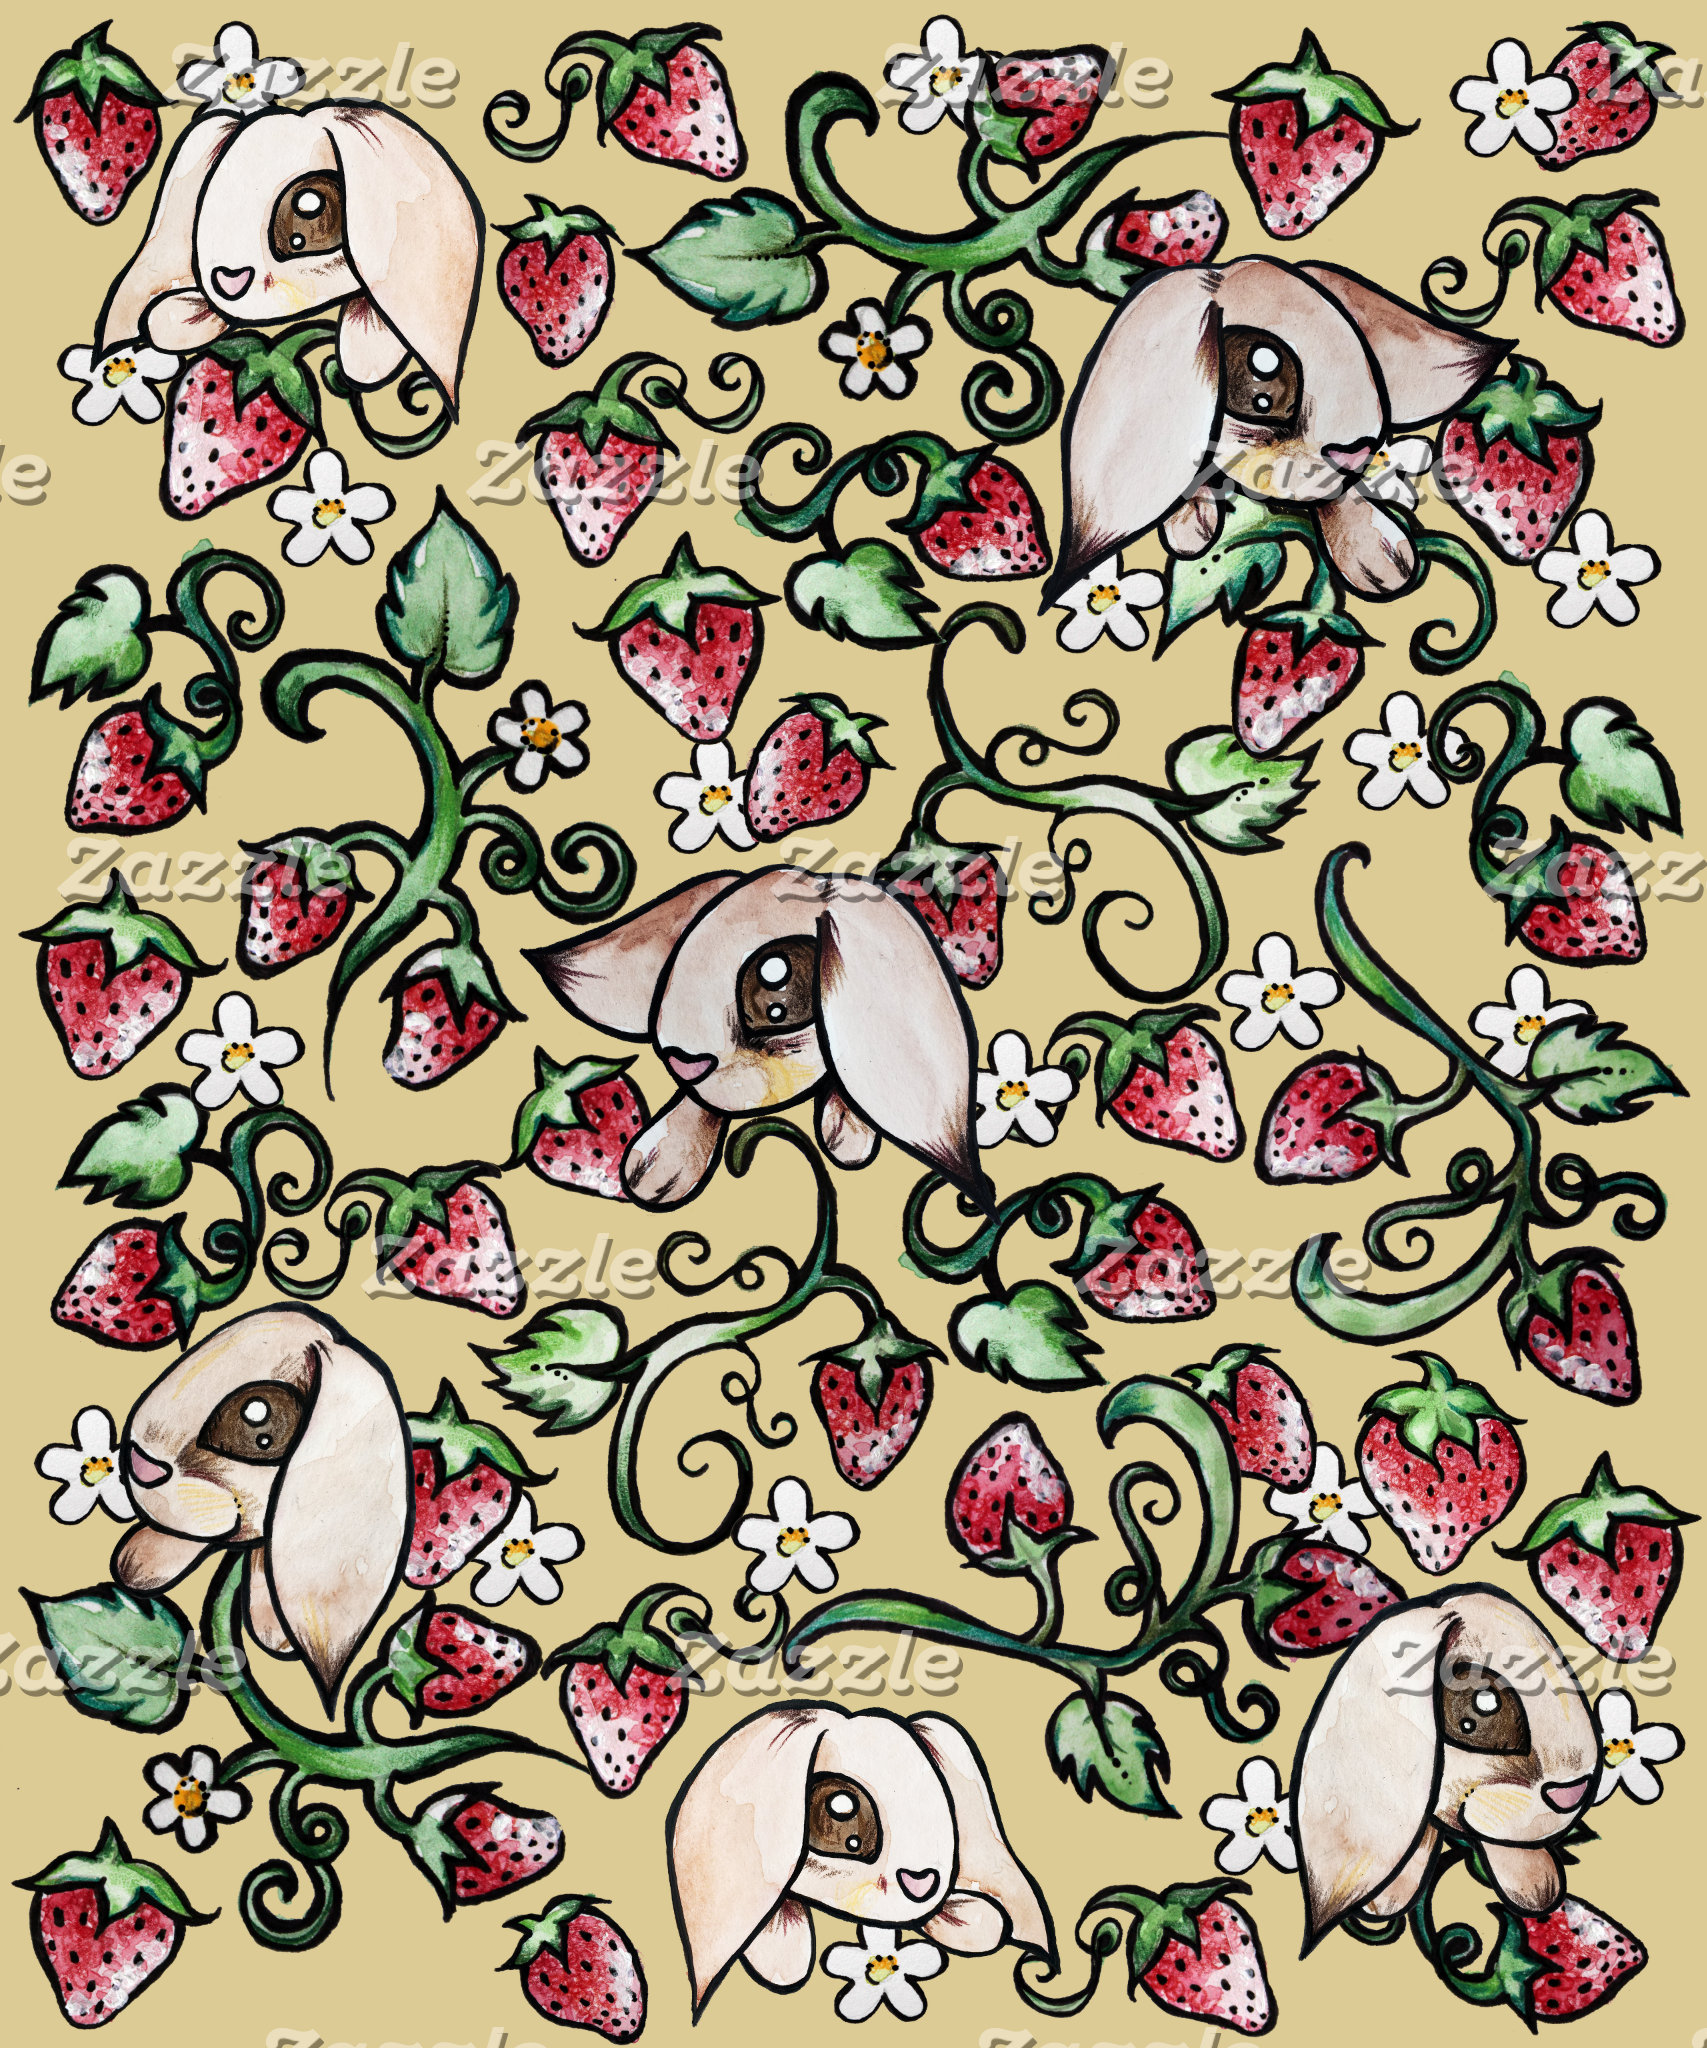 Rabbits in a Strawberry Patch